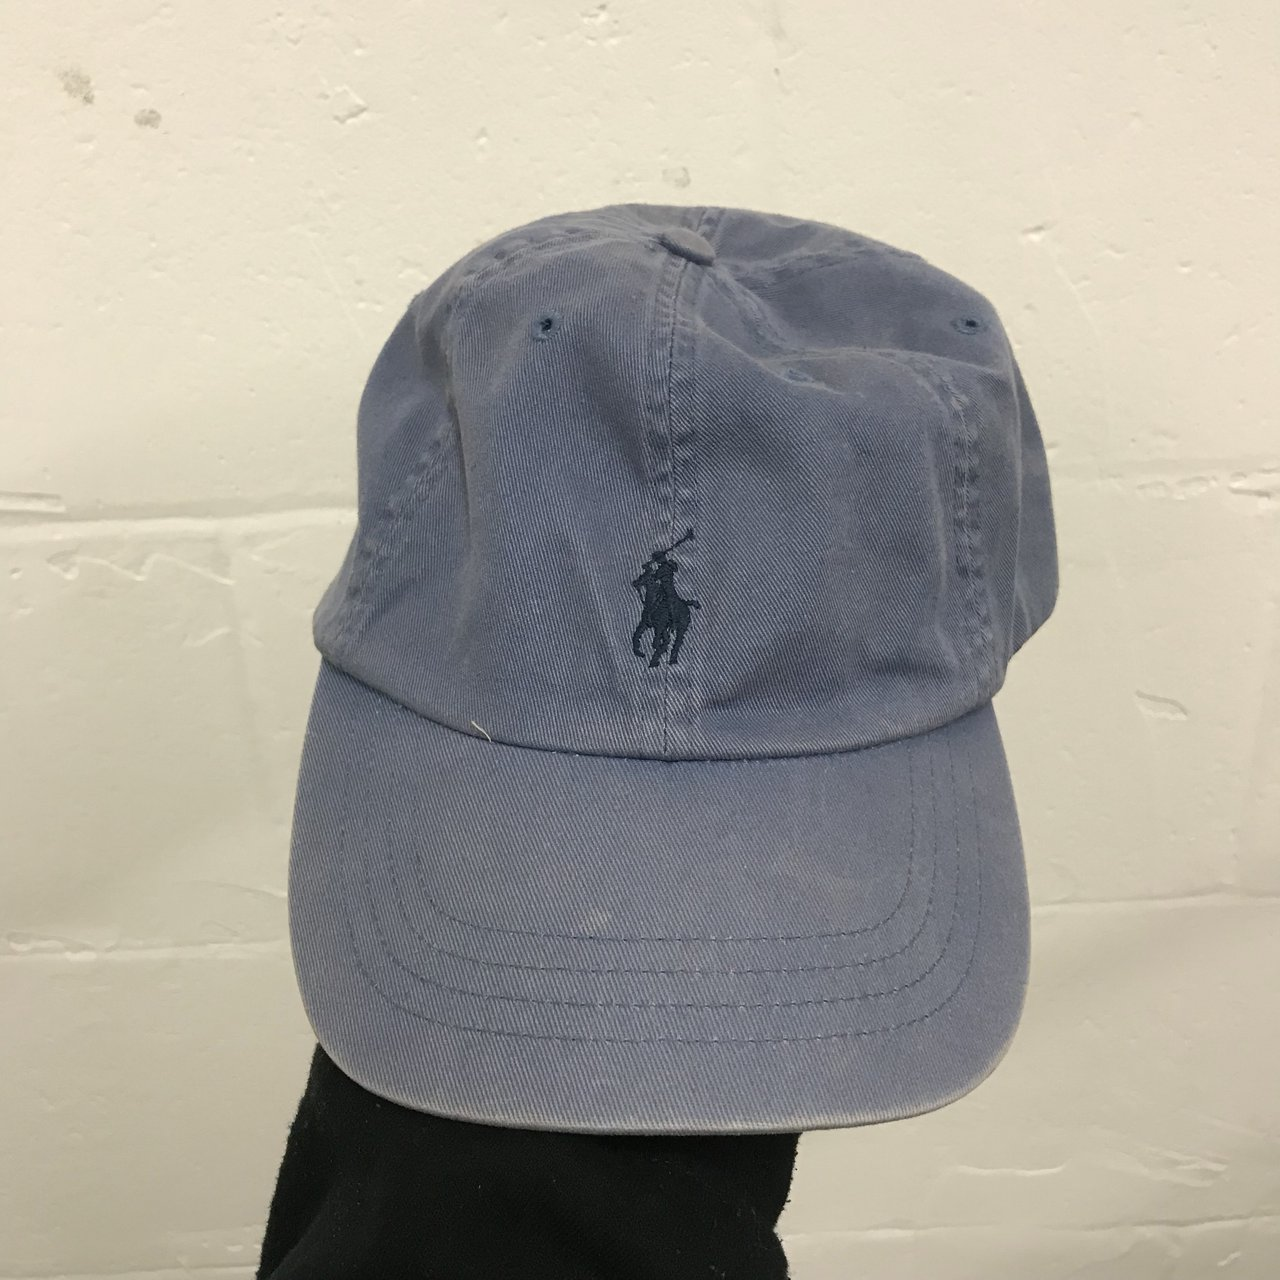 9c156aaa64a Polo Ralph Lauren hat In a